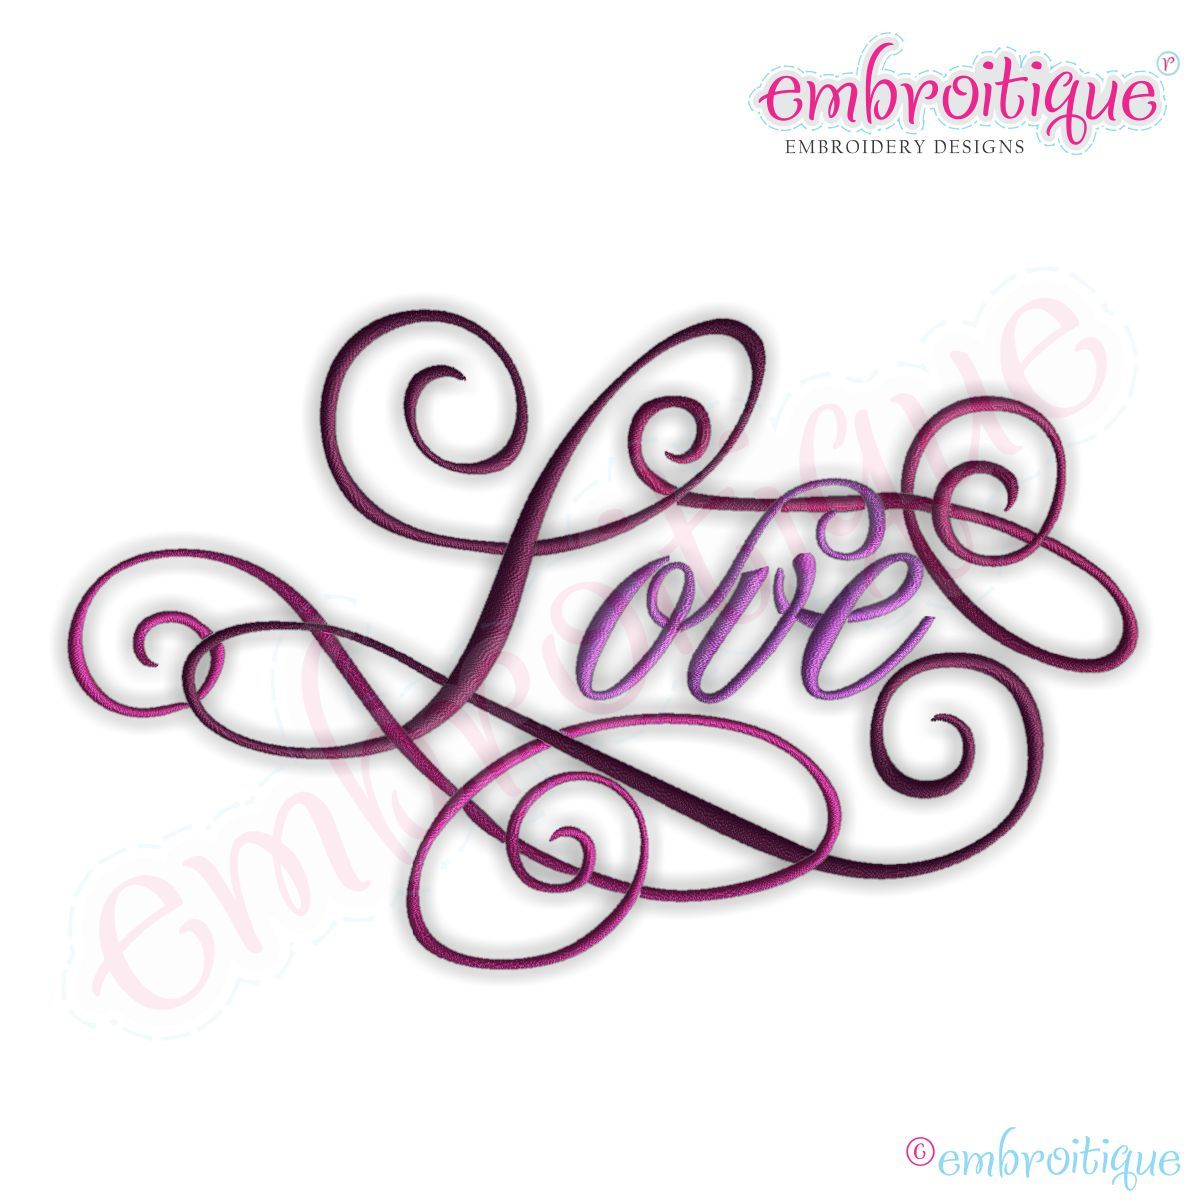 All products love calligraphy script embroidery design